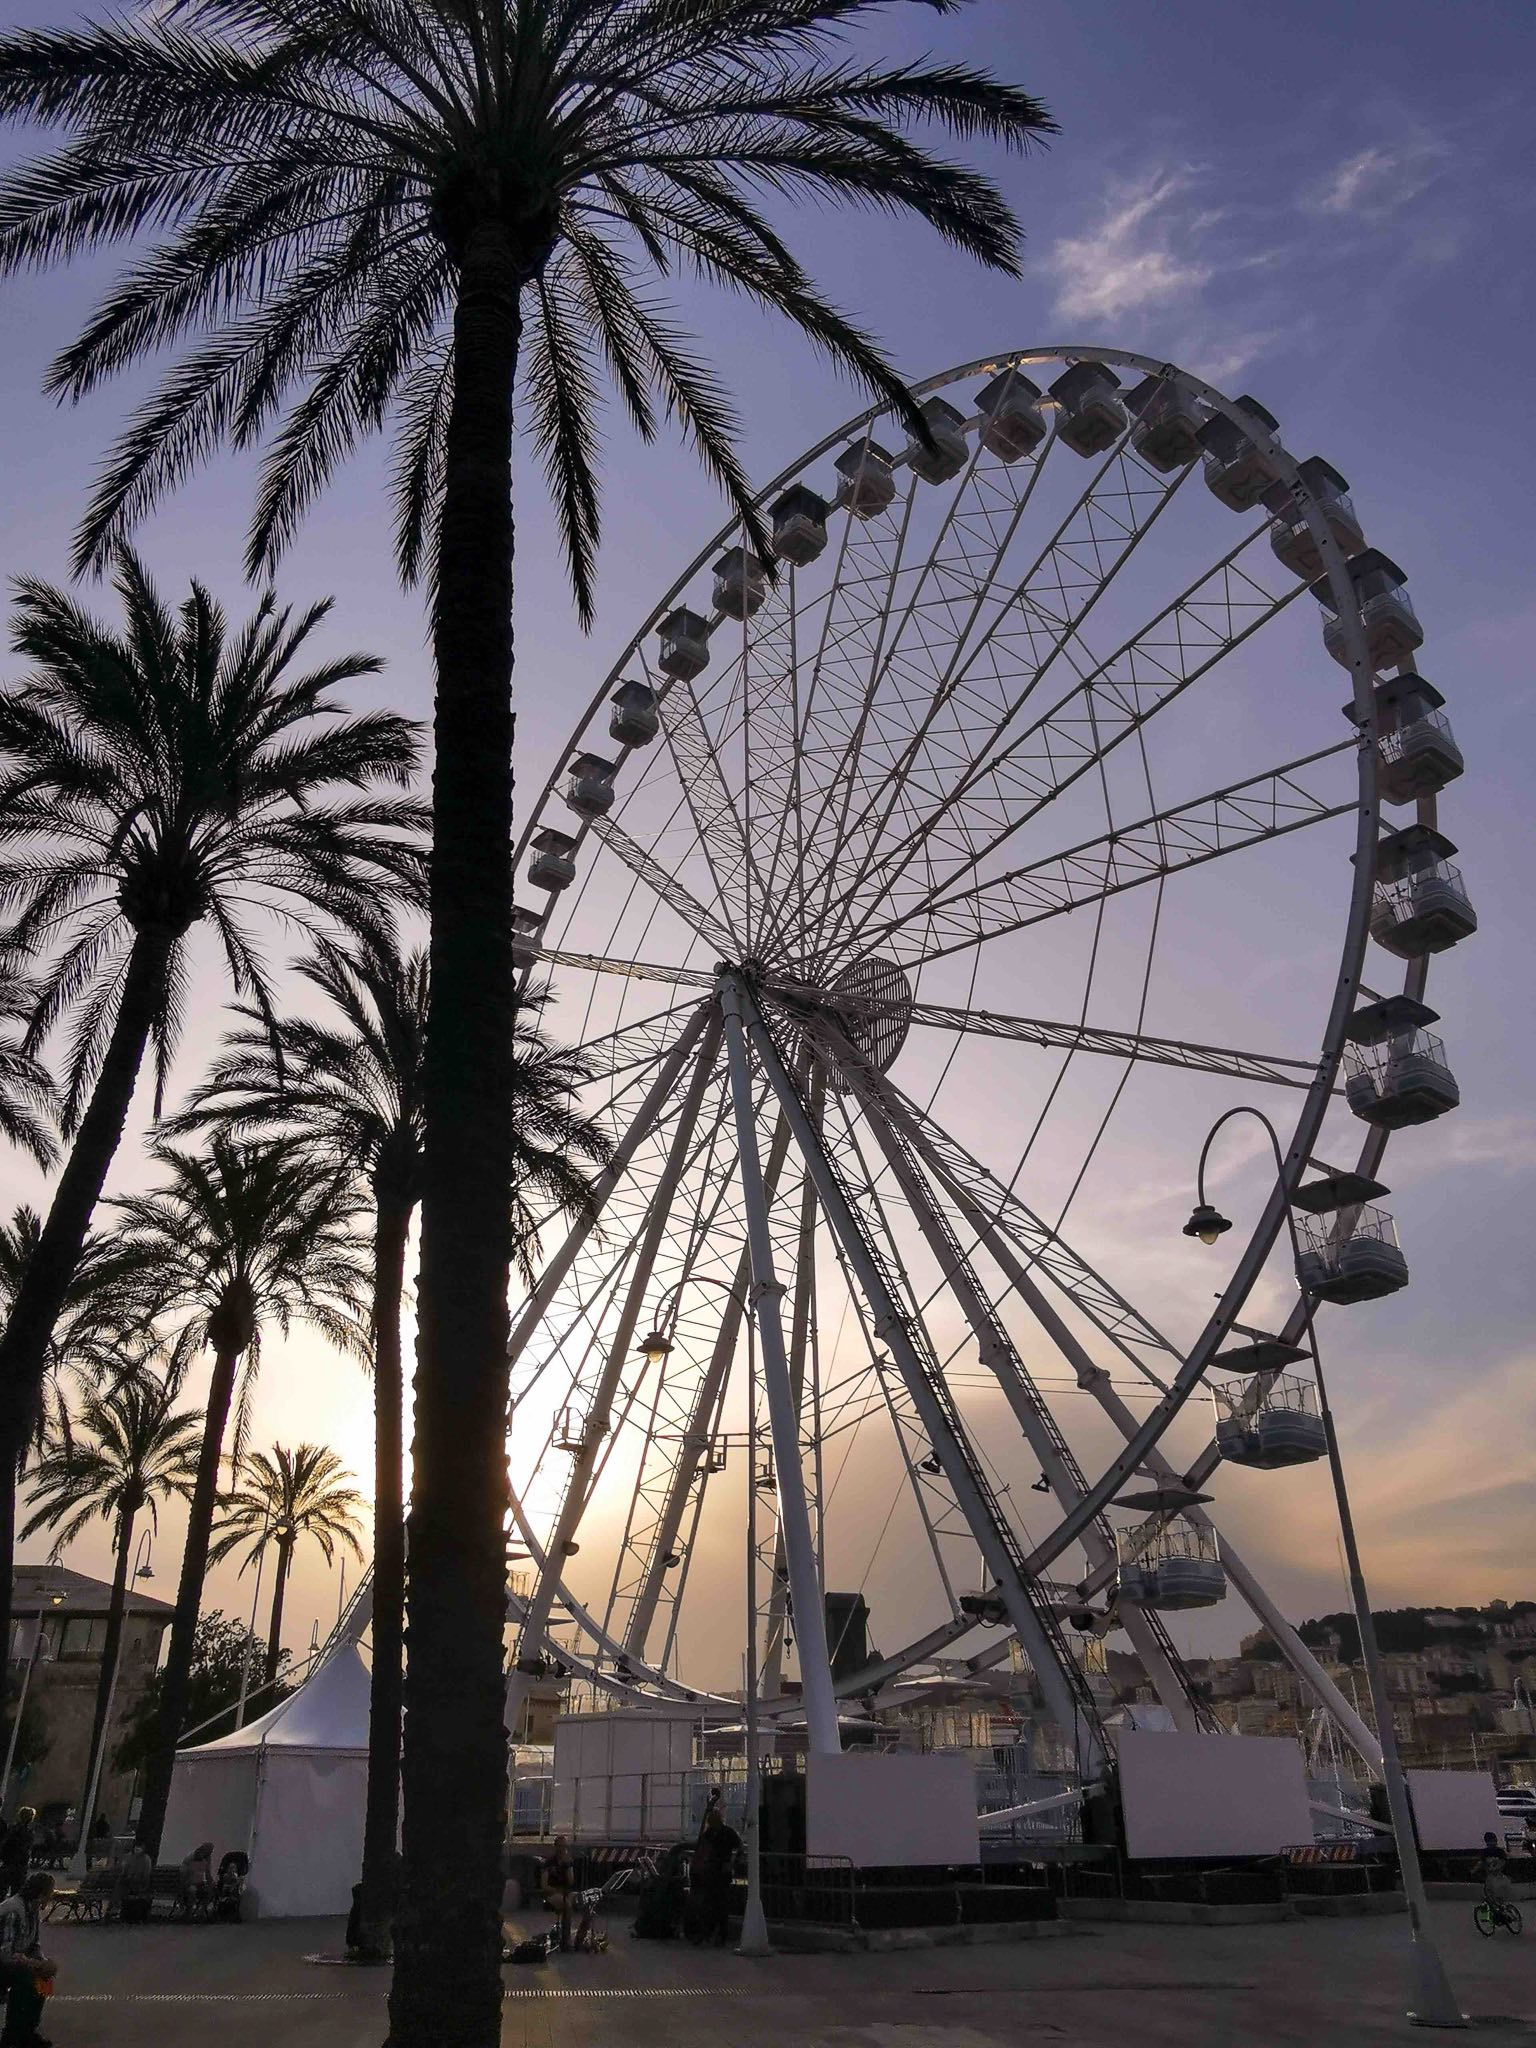 The ferris wheel at Genoa old port at sunset